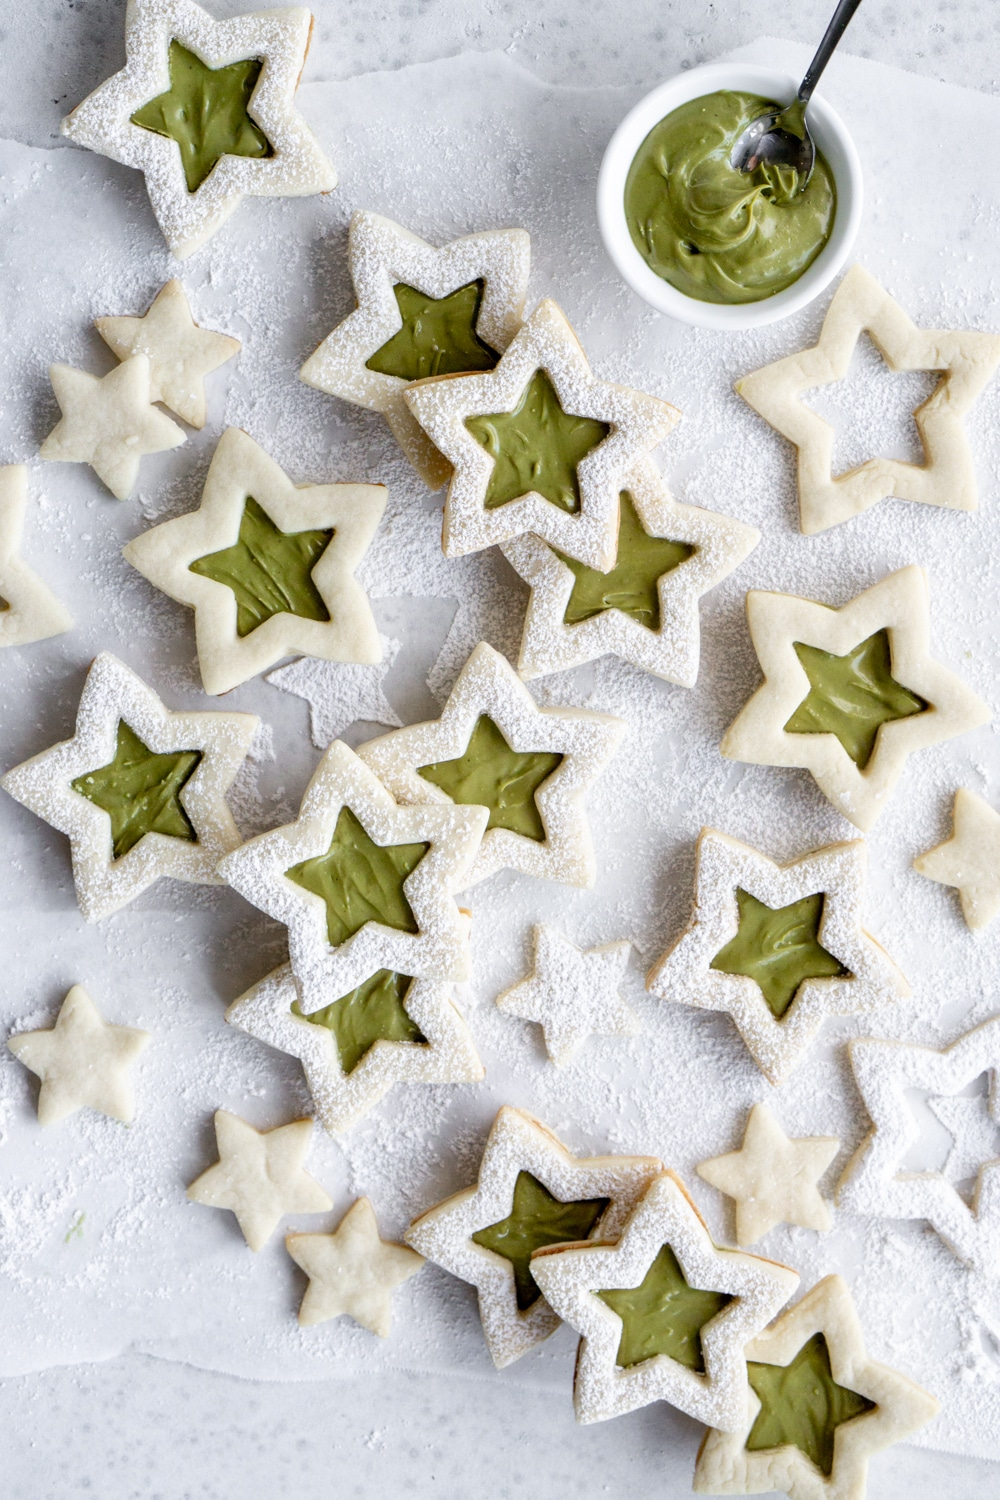 Grouped star cookies with a bowl of pistachio cream